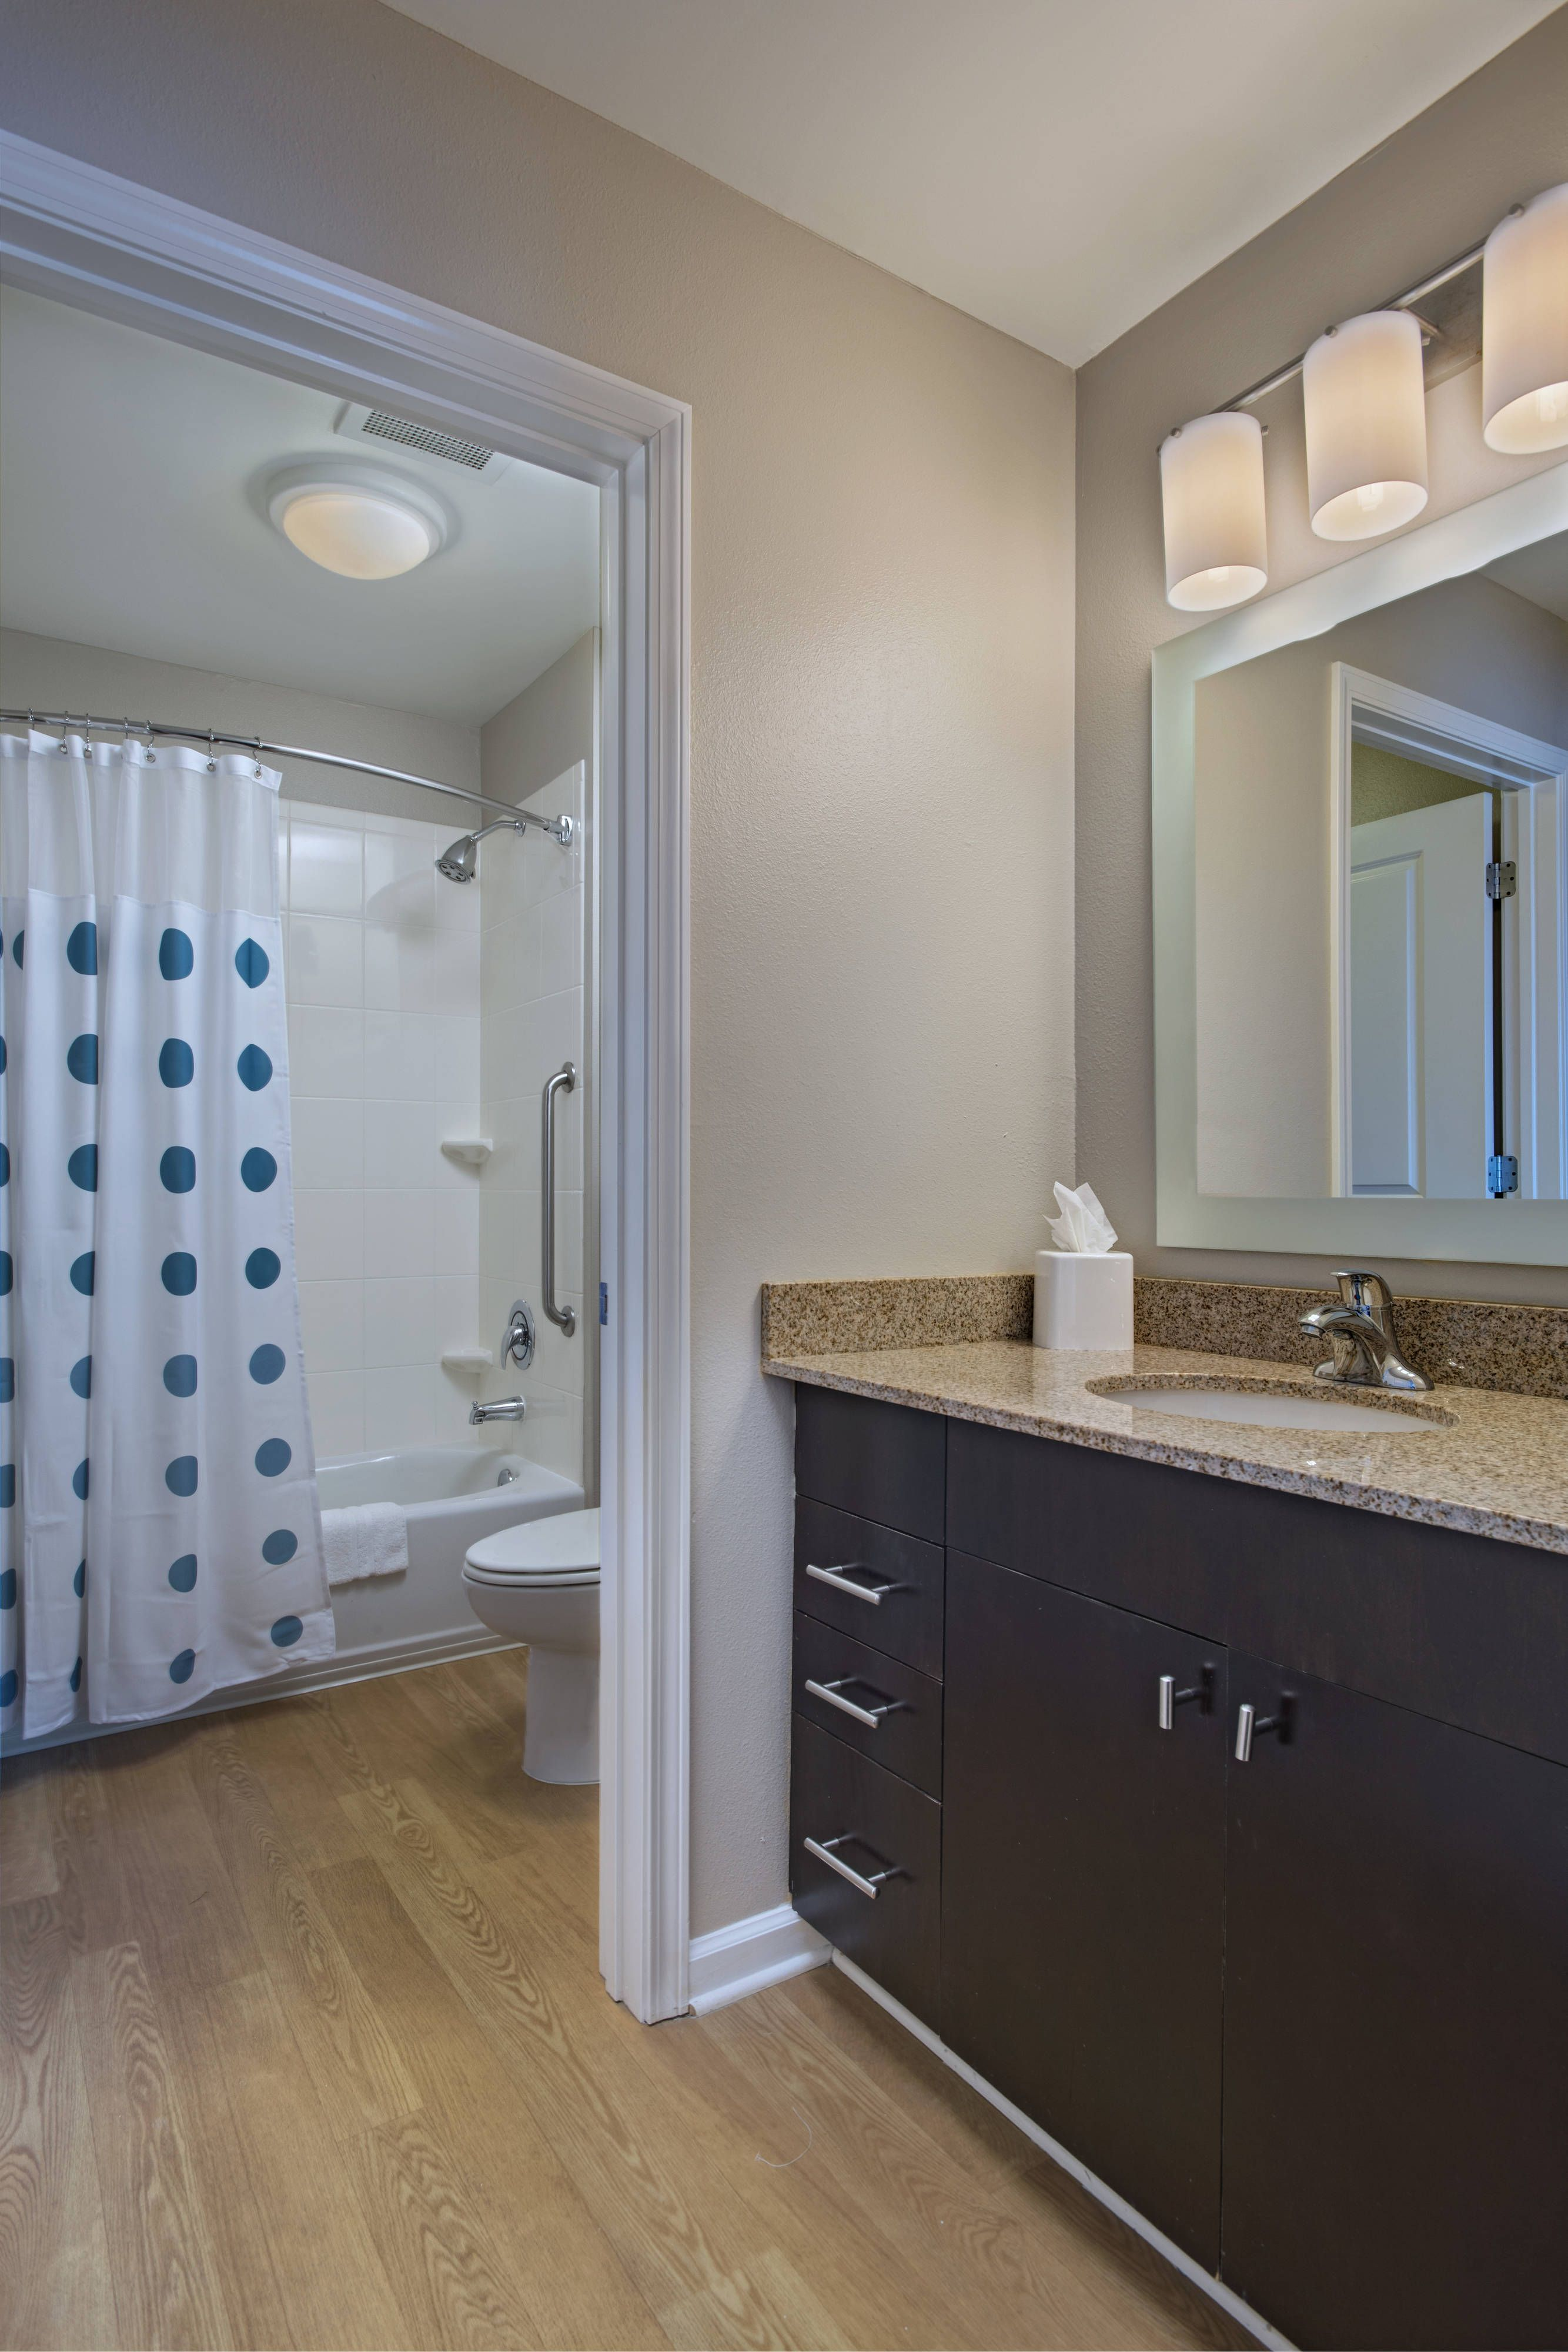 TownePlace Suites Fayetteville Cross Creek OneBedroom